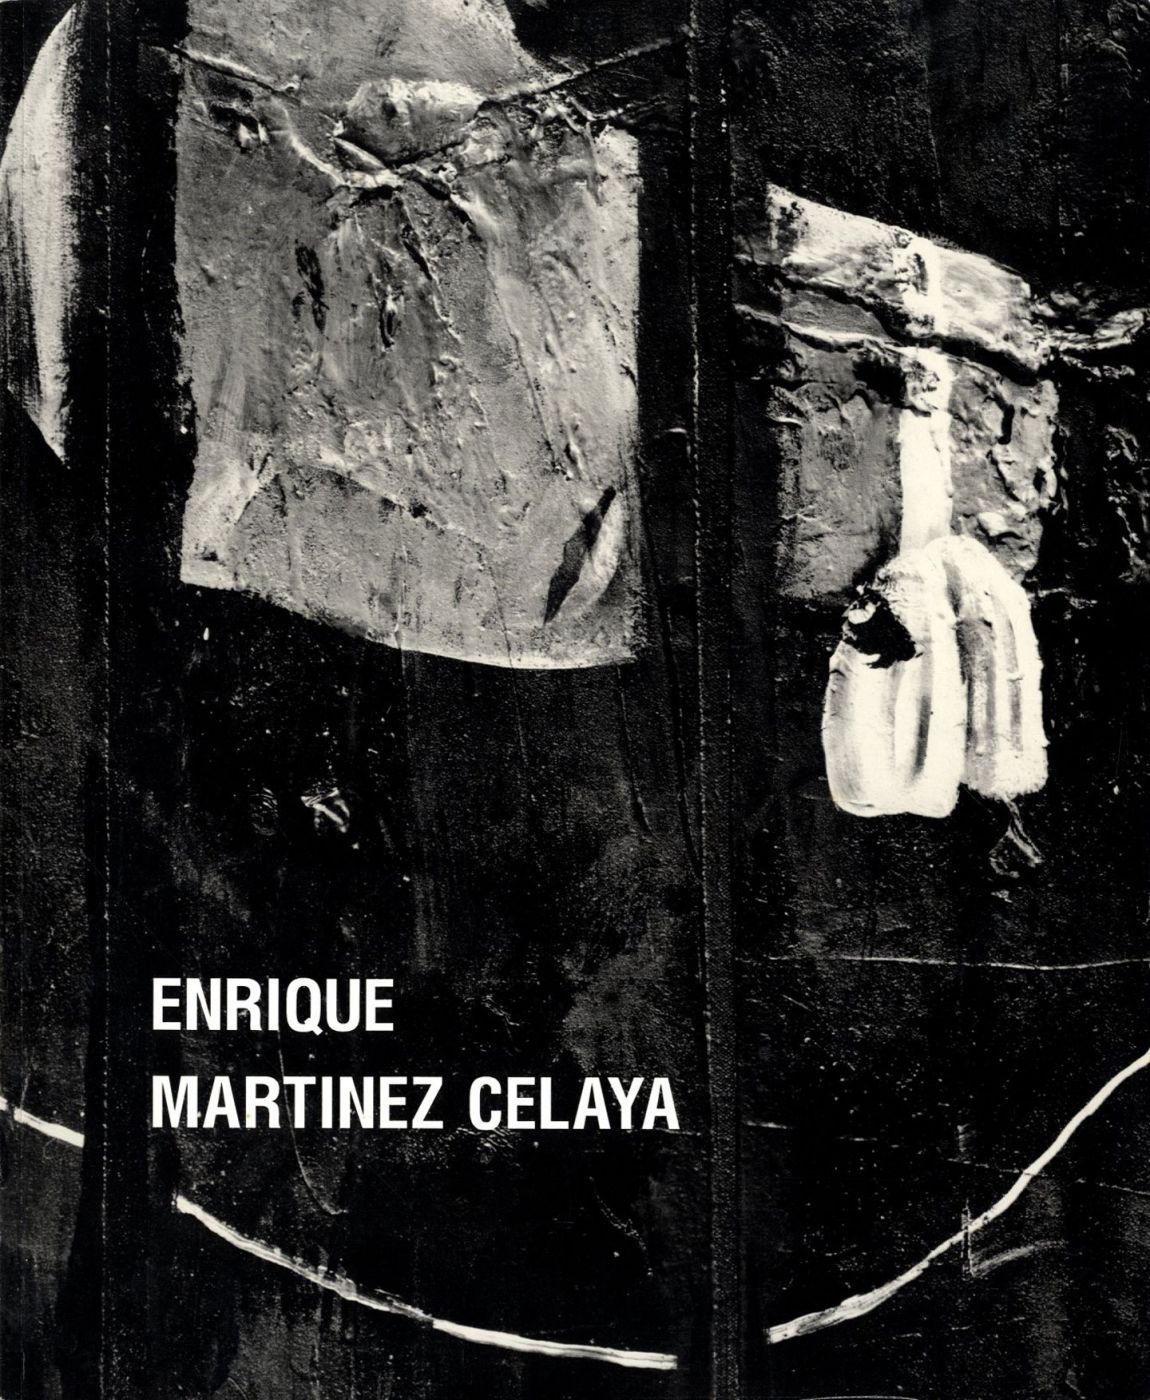 Enrique Martinez Celaya: Berlin - The Fragility of Nearness